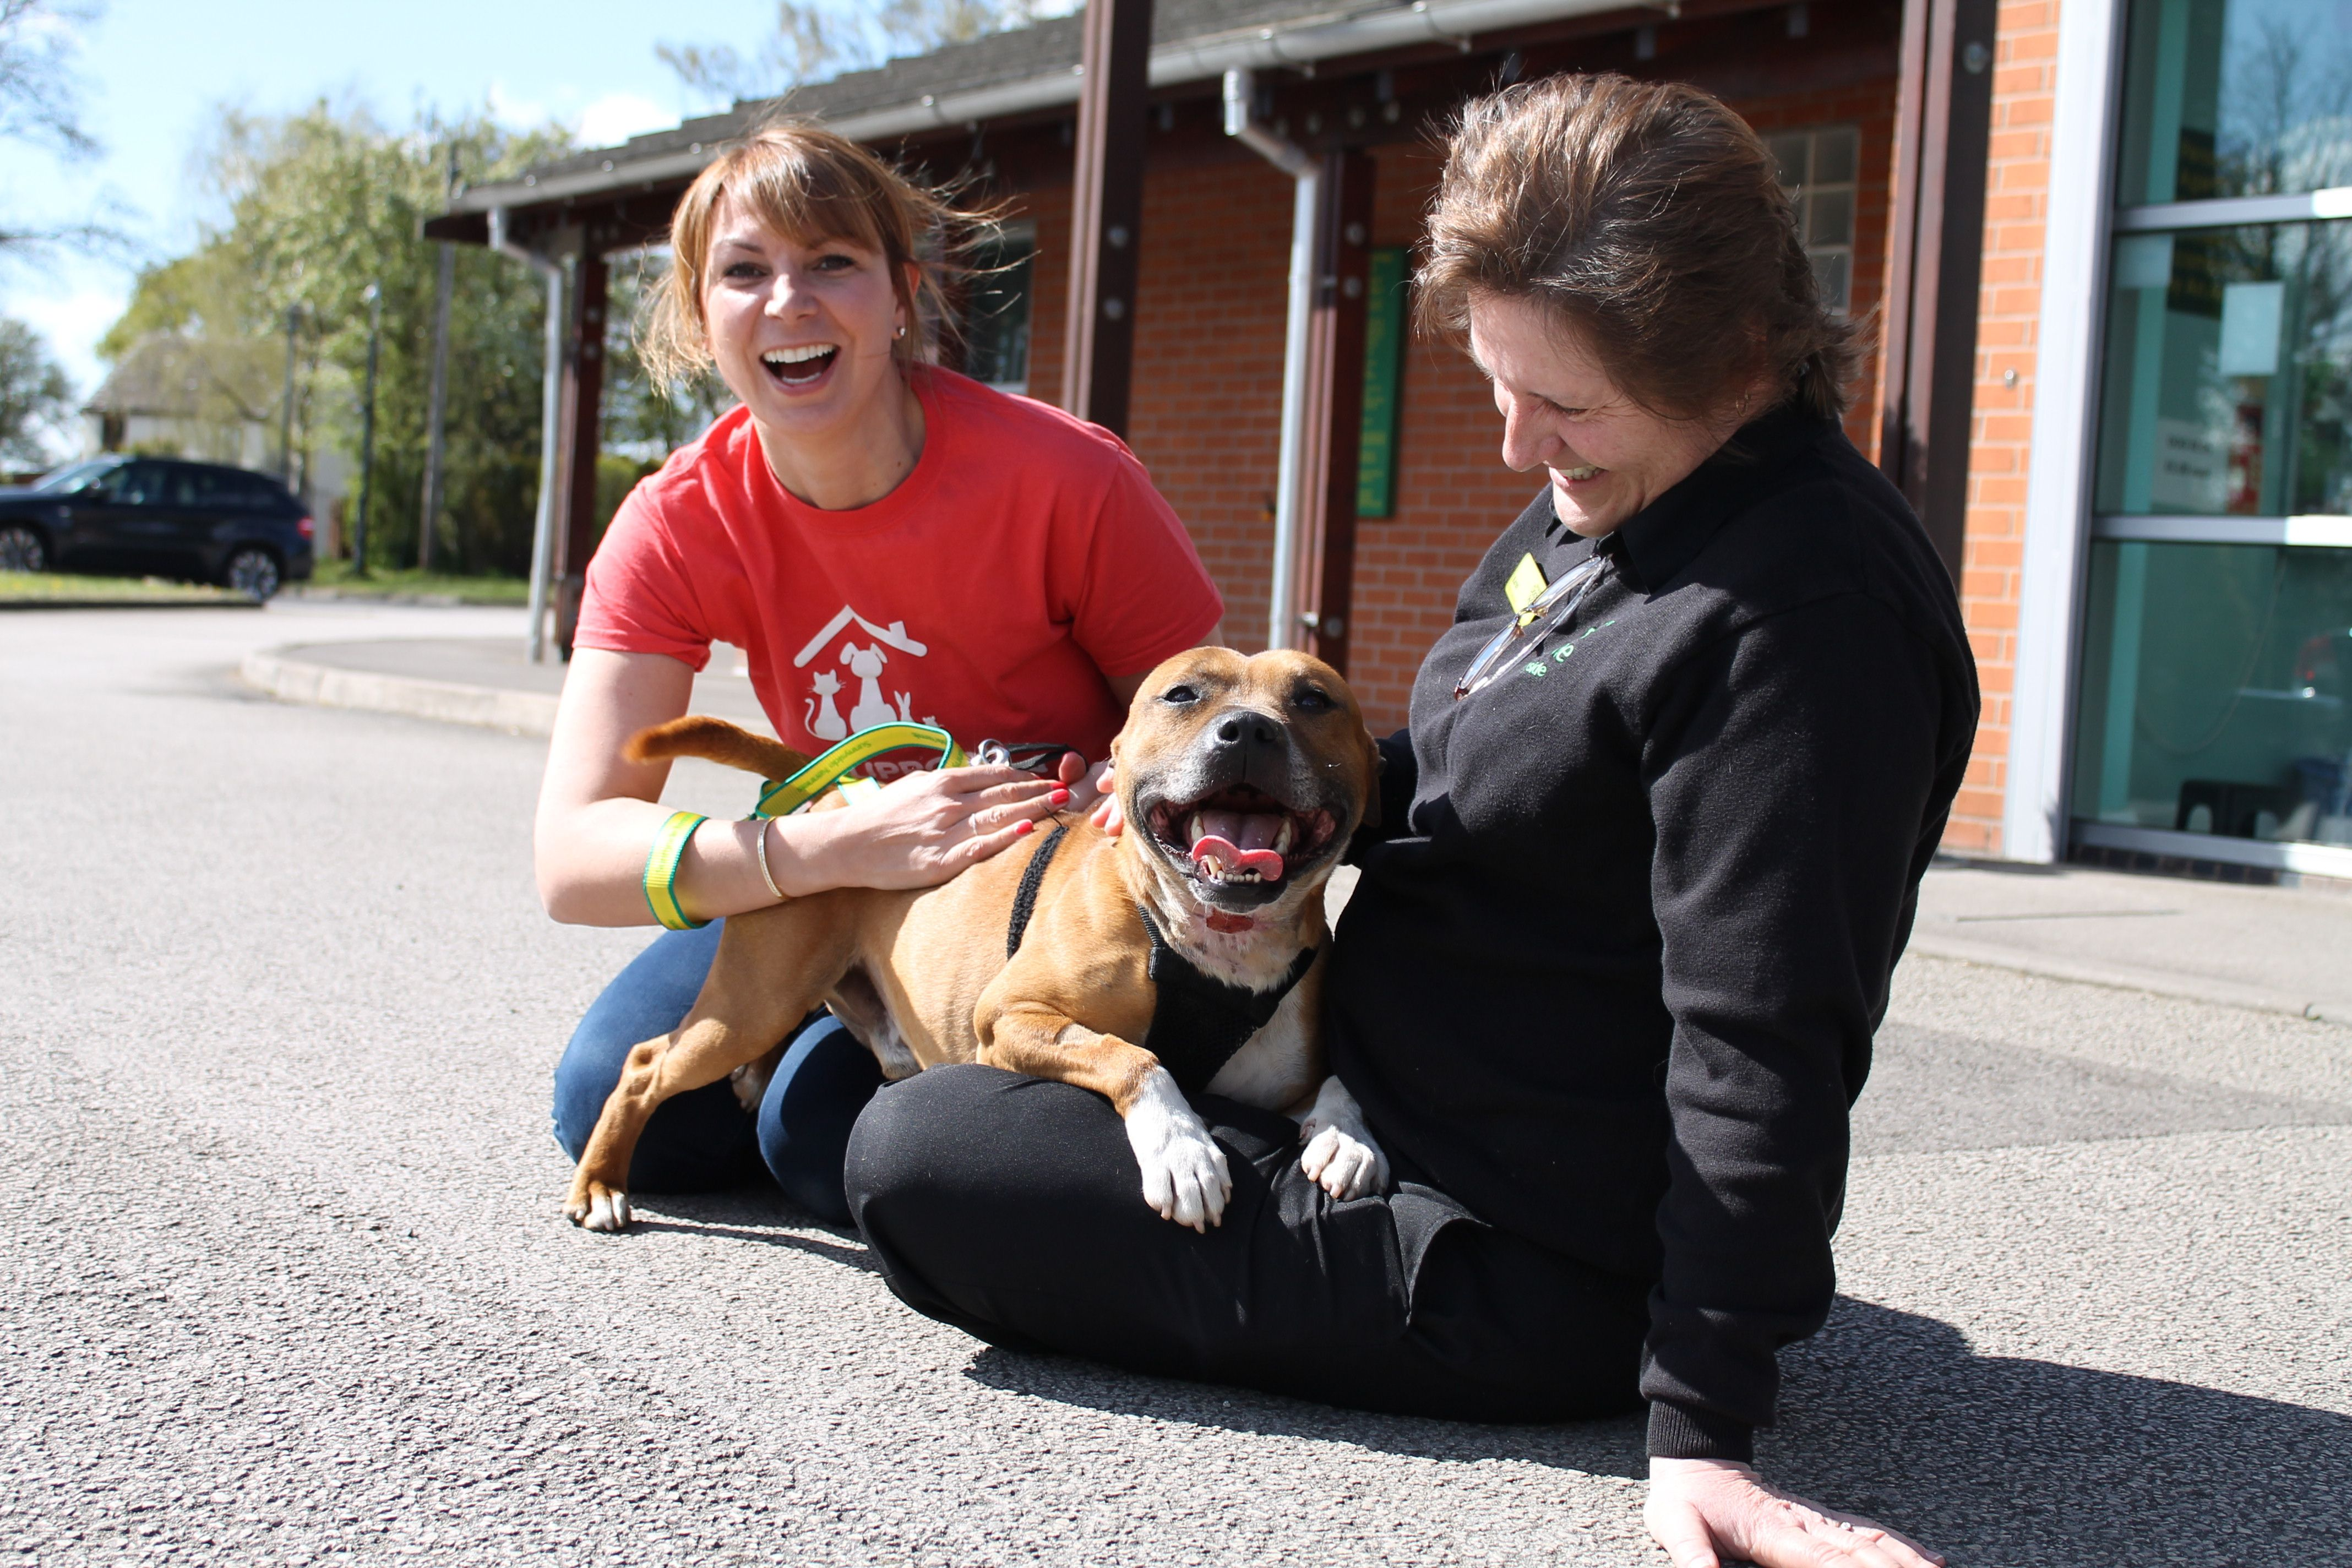 A classic happy photo as we award £50,000 to Birmingham Dogs Home!